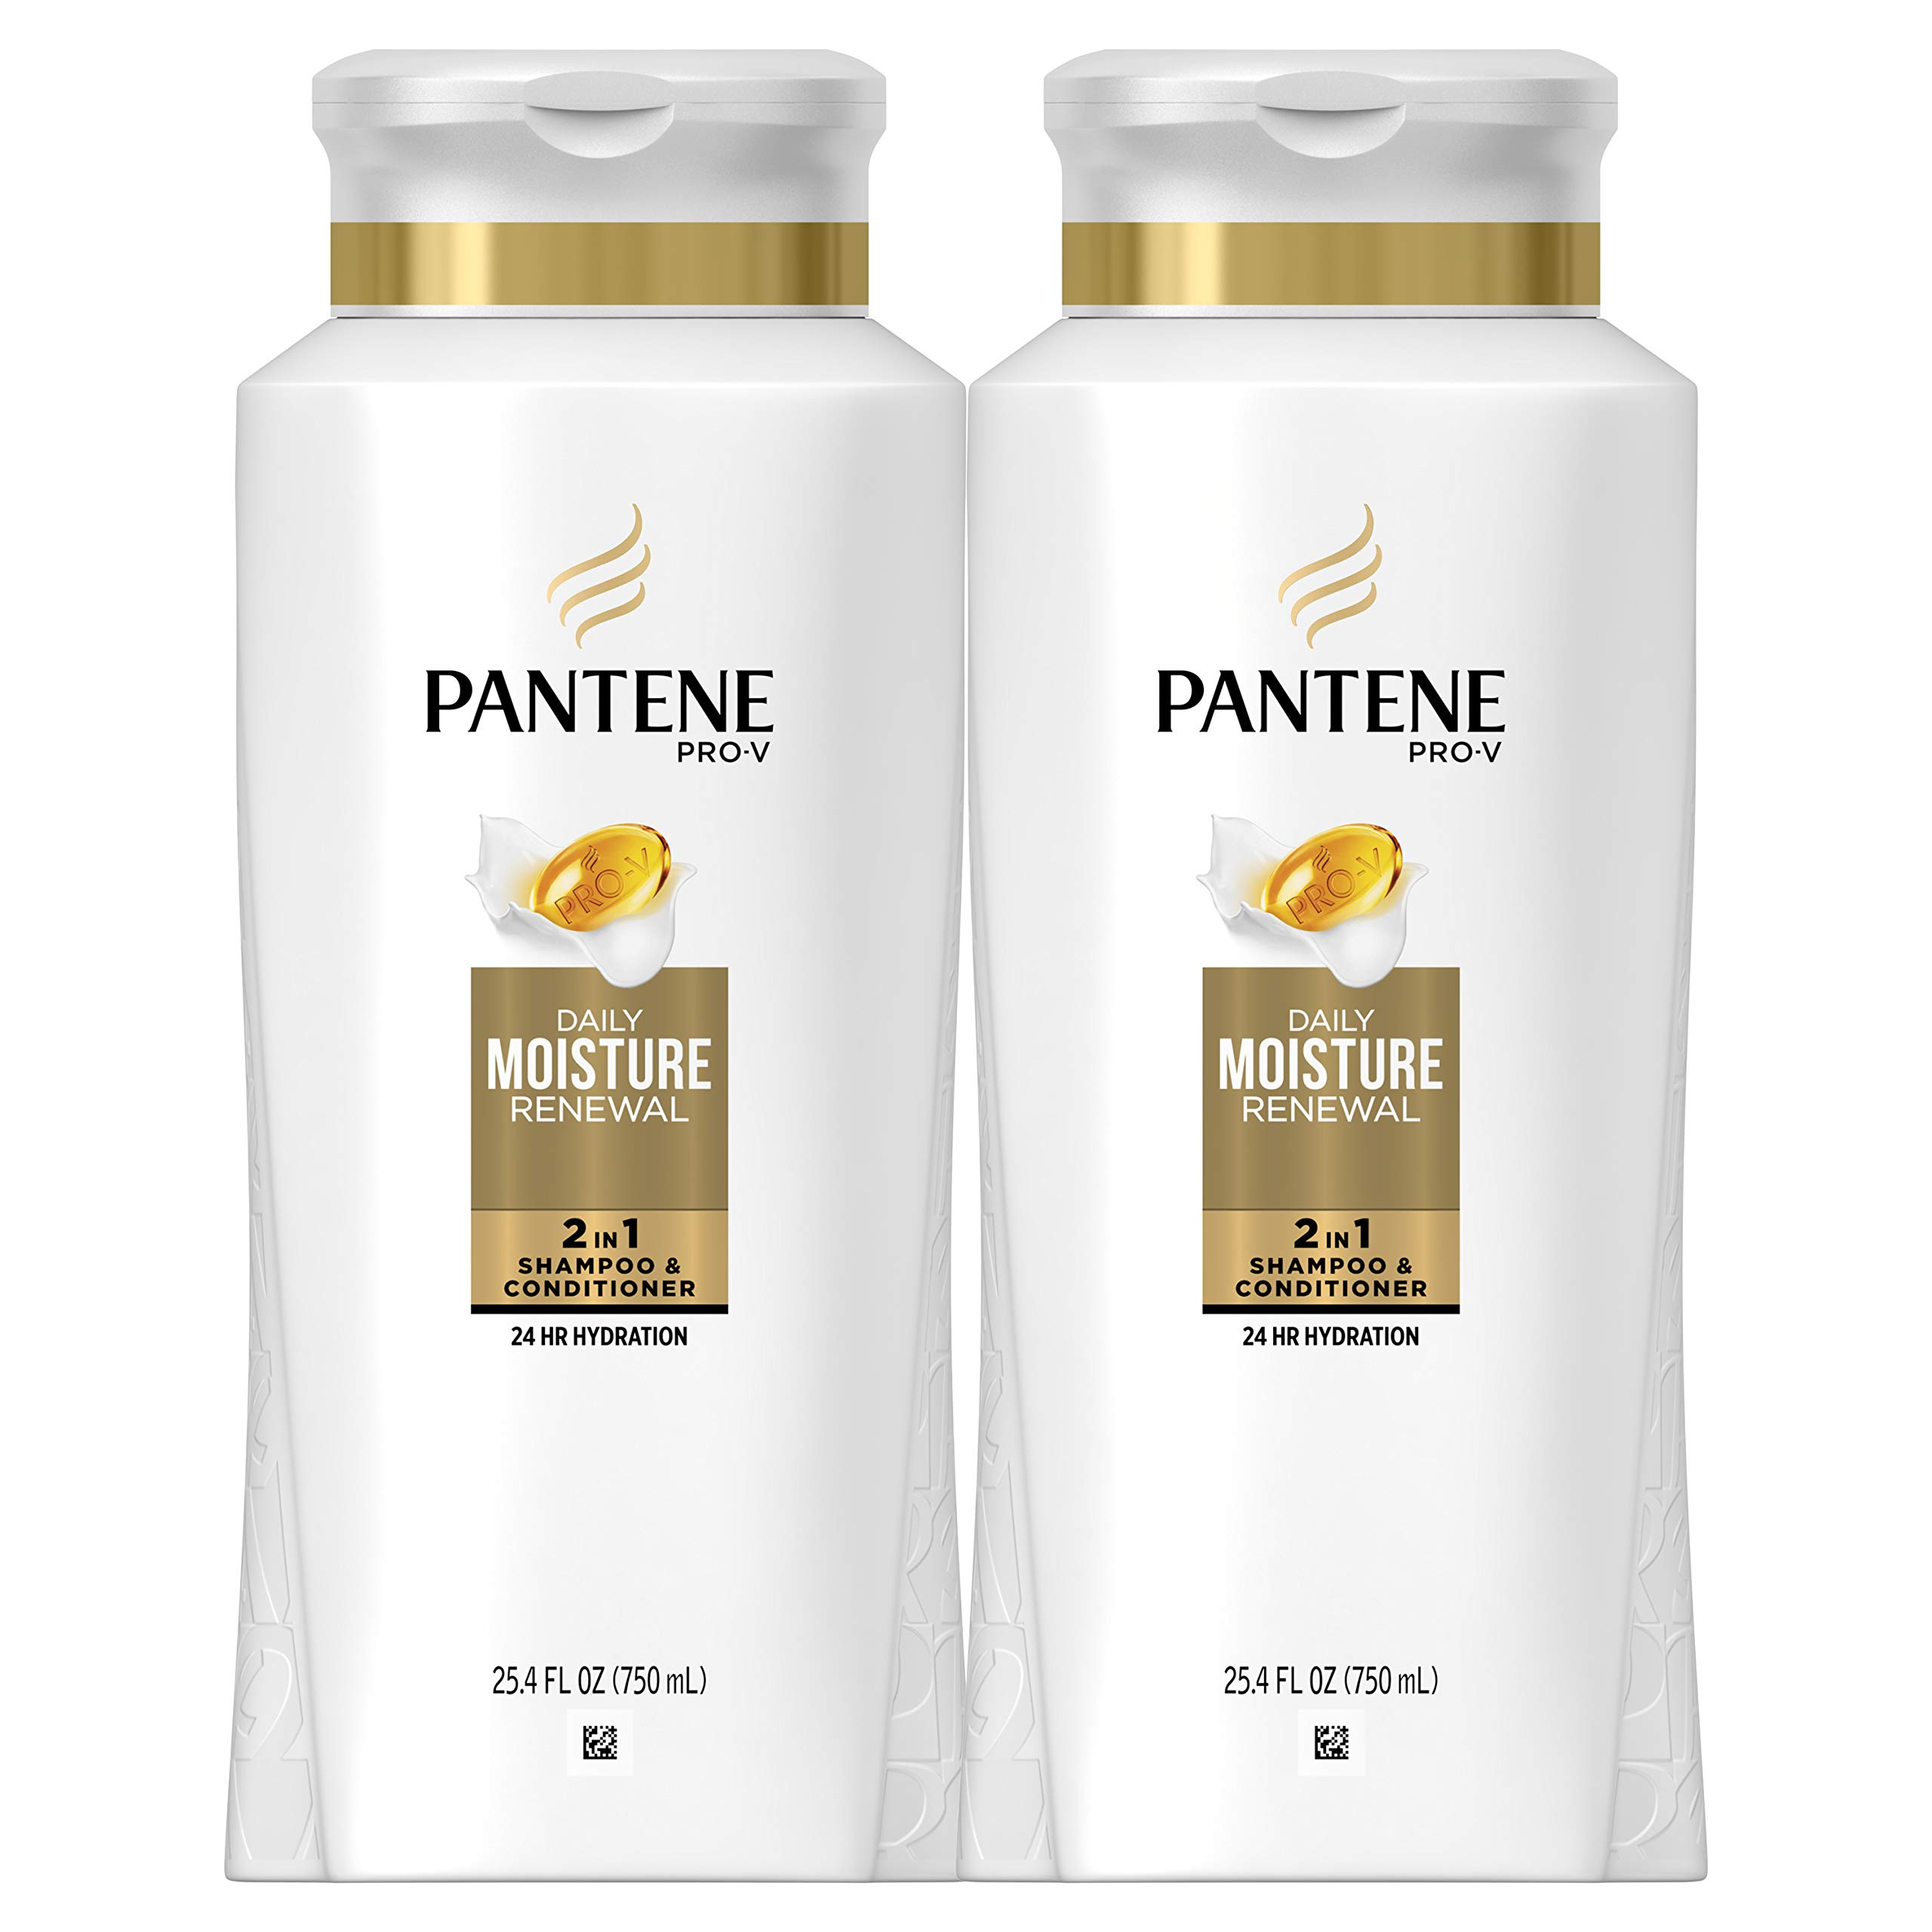 Pantene Shampoo and Conditioner 2 in 1, Pro-V Daily Moisture Renewal for Dry Hair, 25.4 Fl Oz, Pack of 2 by Pantene